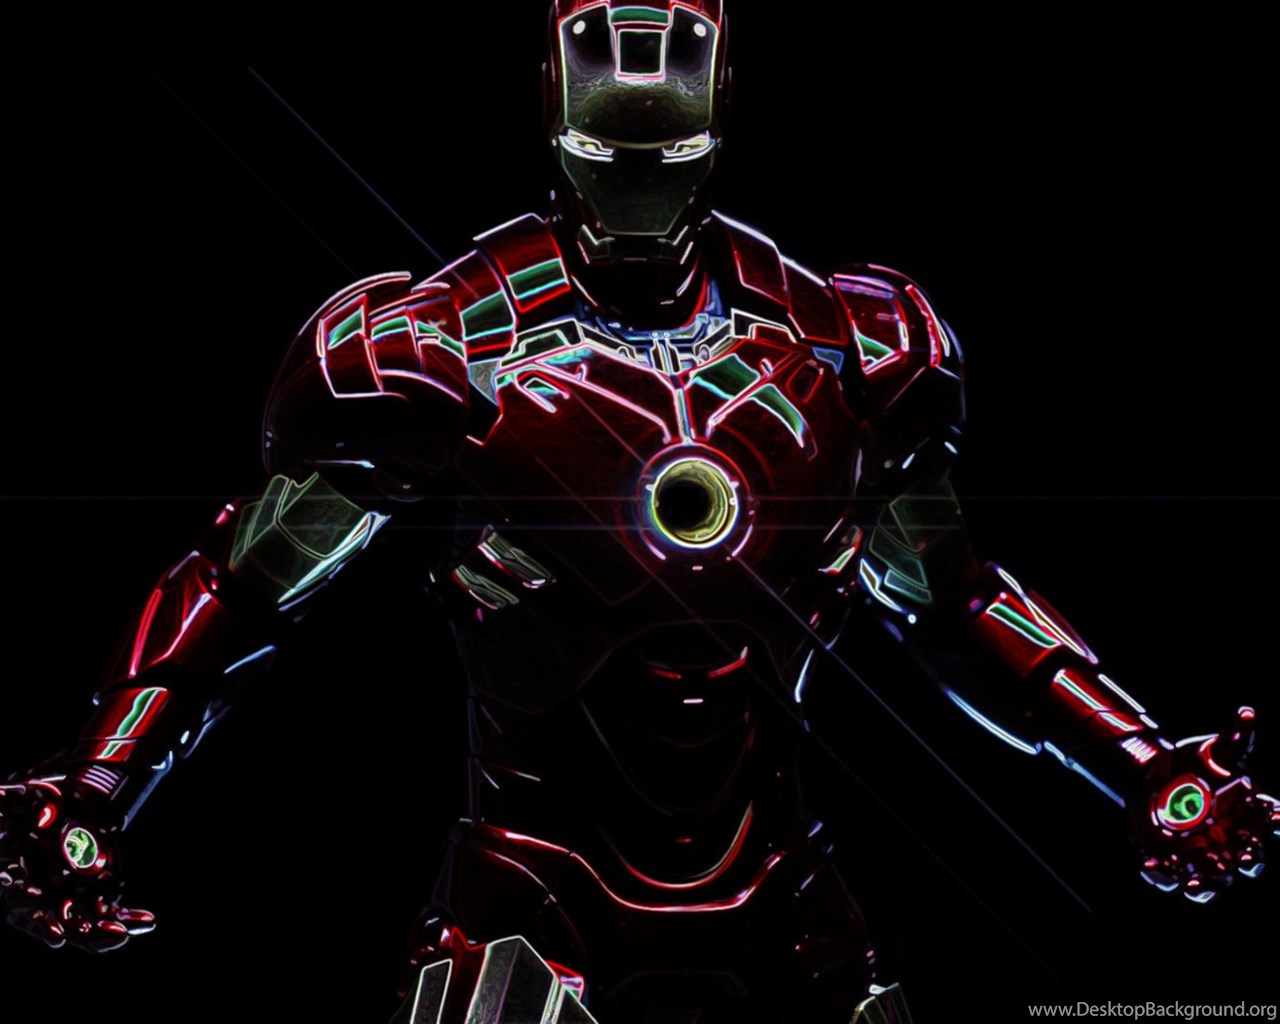 35 Iron Man Hd Wallpapers For Desktop: 146 Iron Man HD Wallpapers Desktop Background